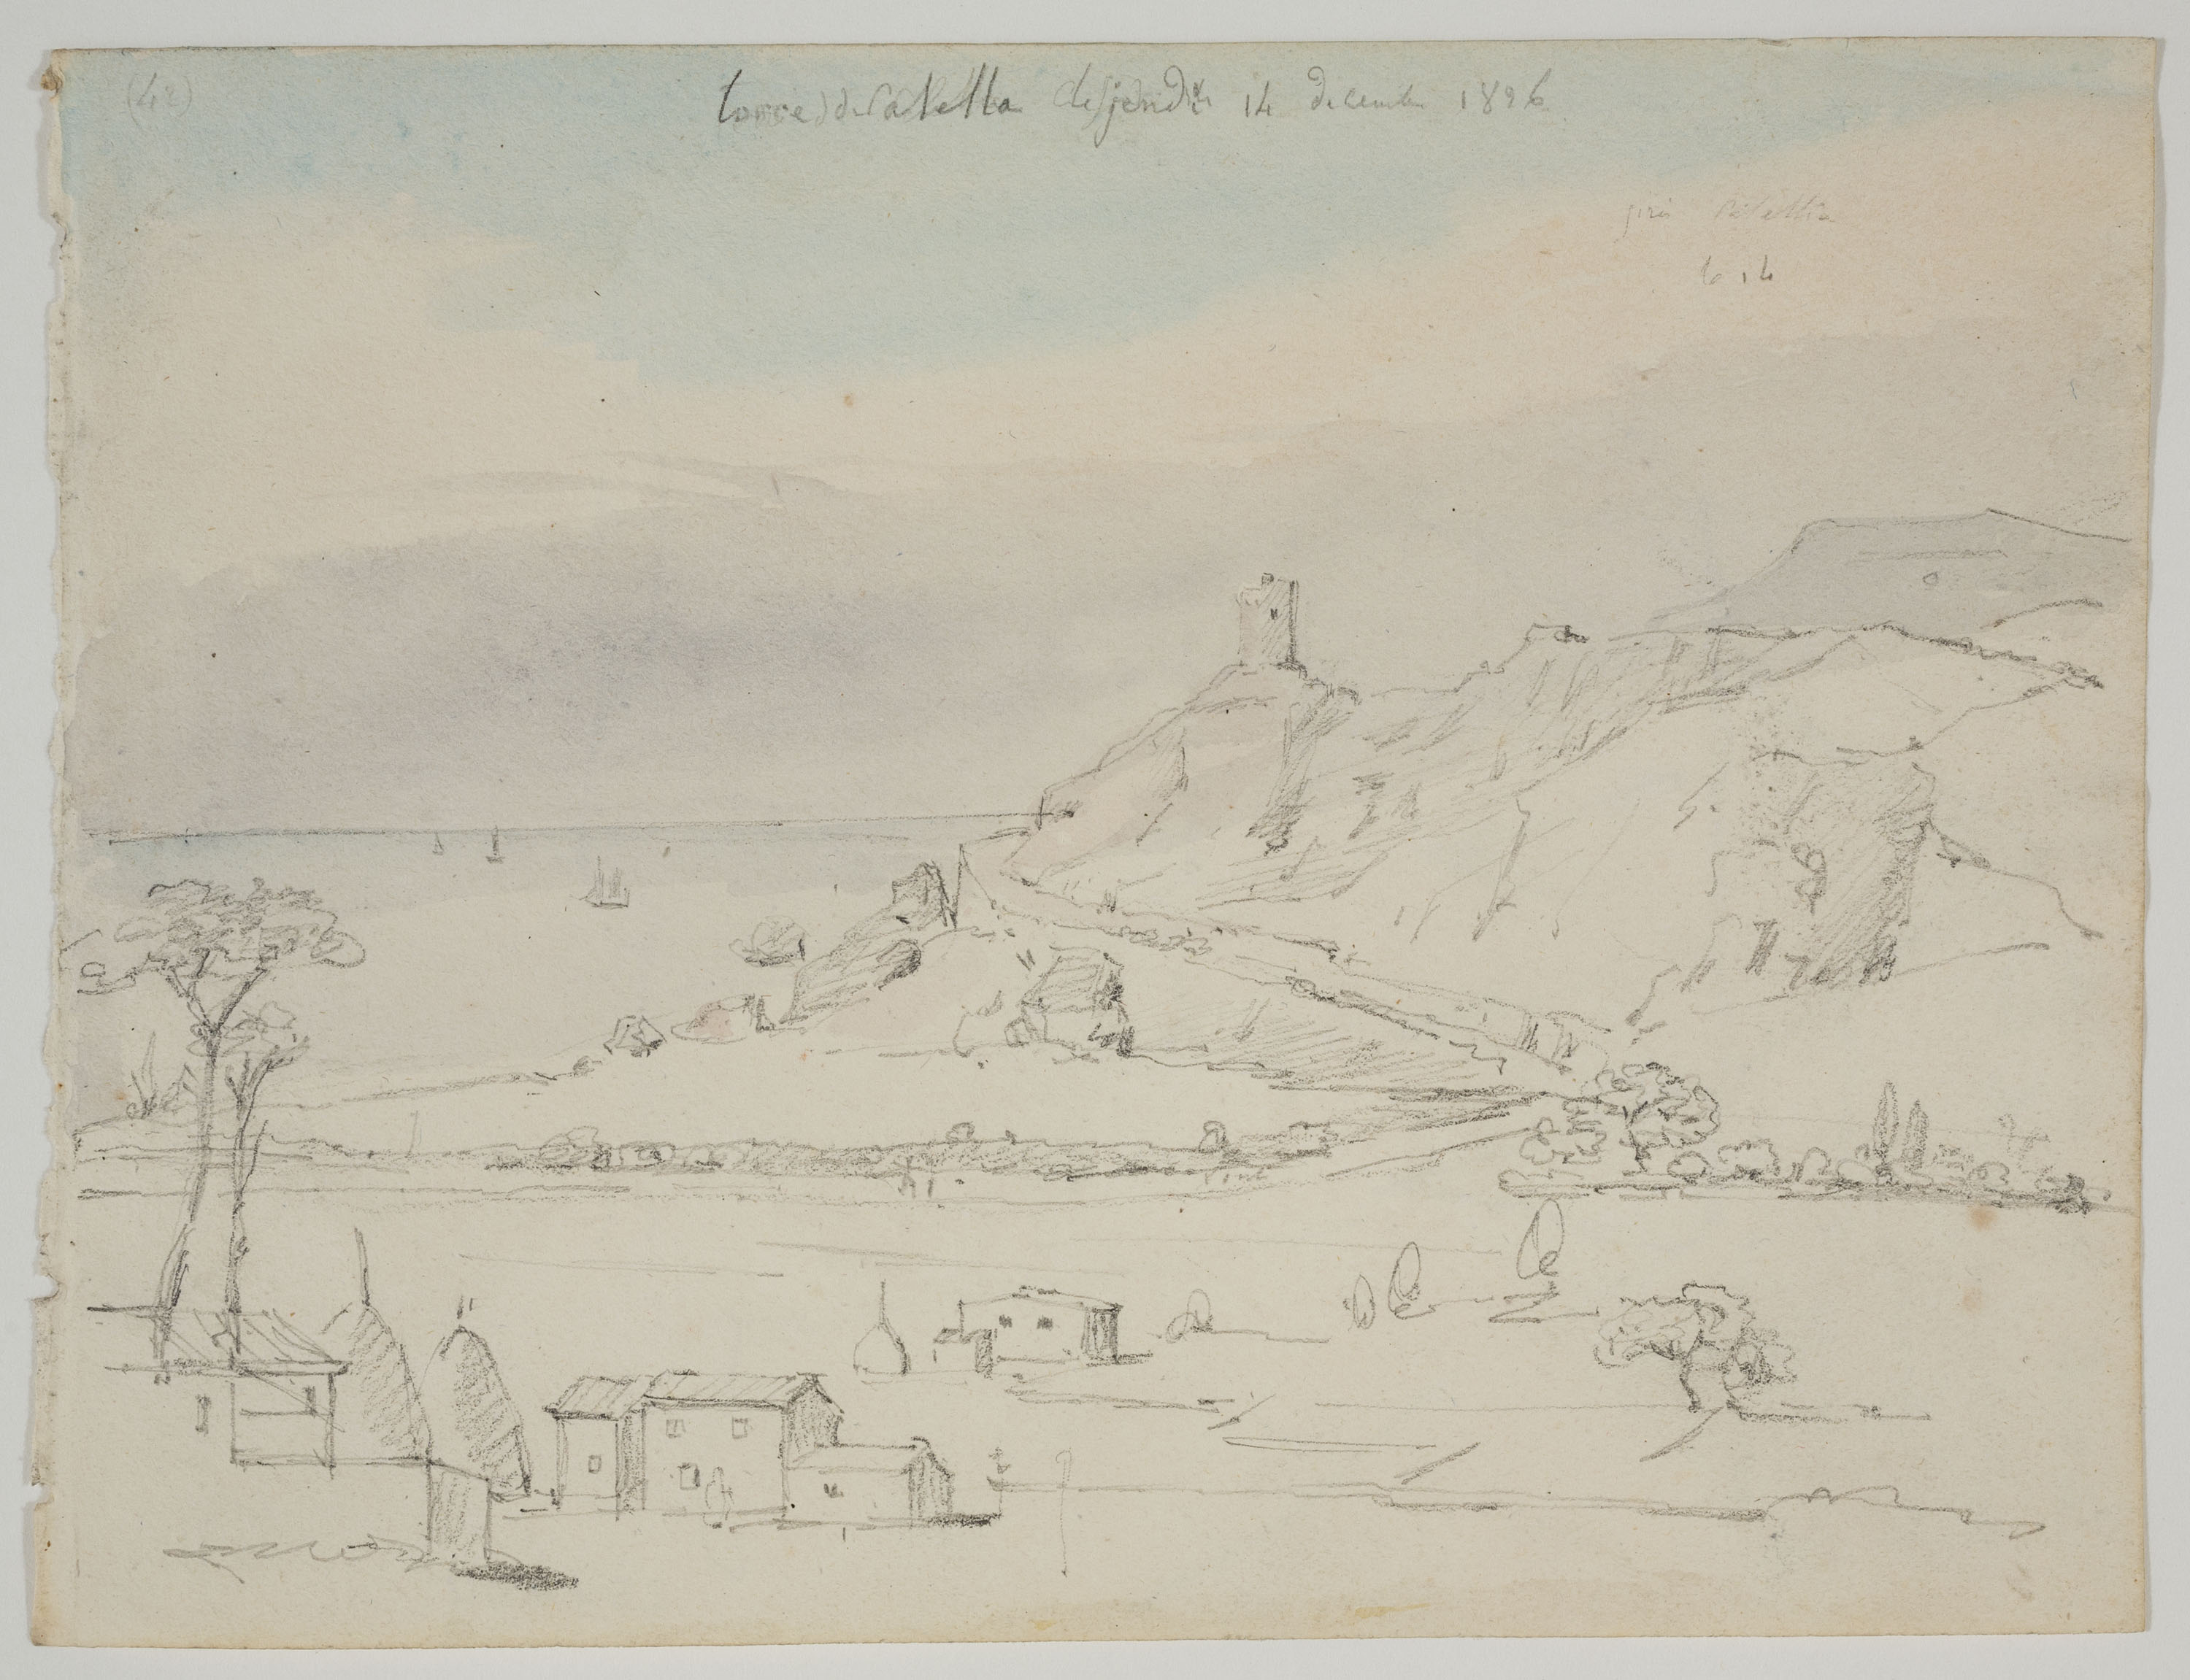 Adolphe Hedwige Alphonse Delamare - Tower in Calella - Thursday, December 14, 1826